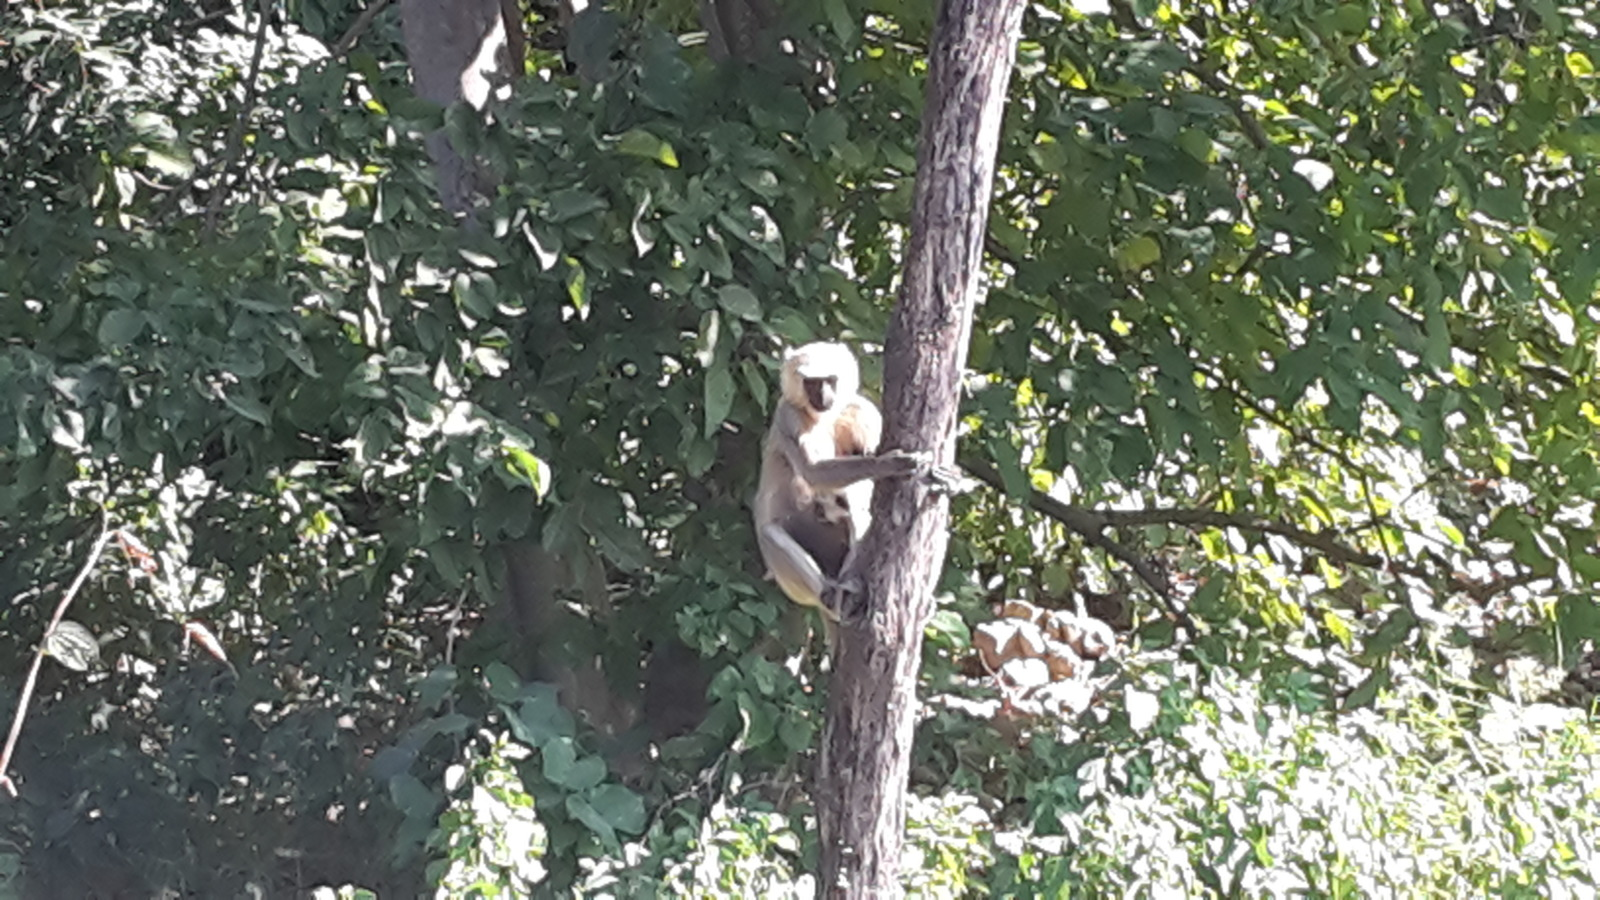 A monkey in the Sukla Phanta wildlife reserve.